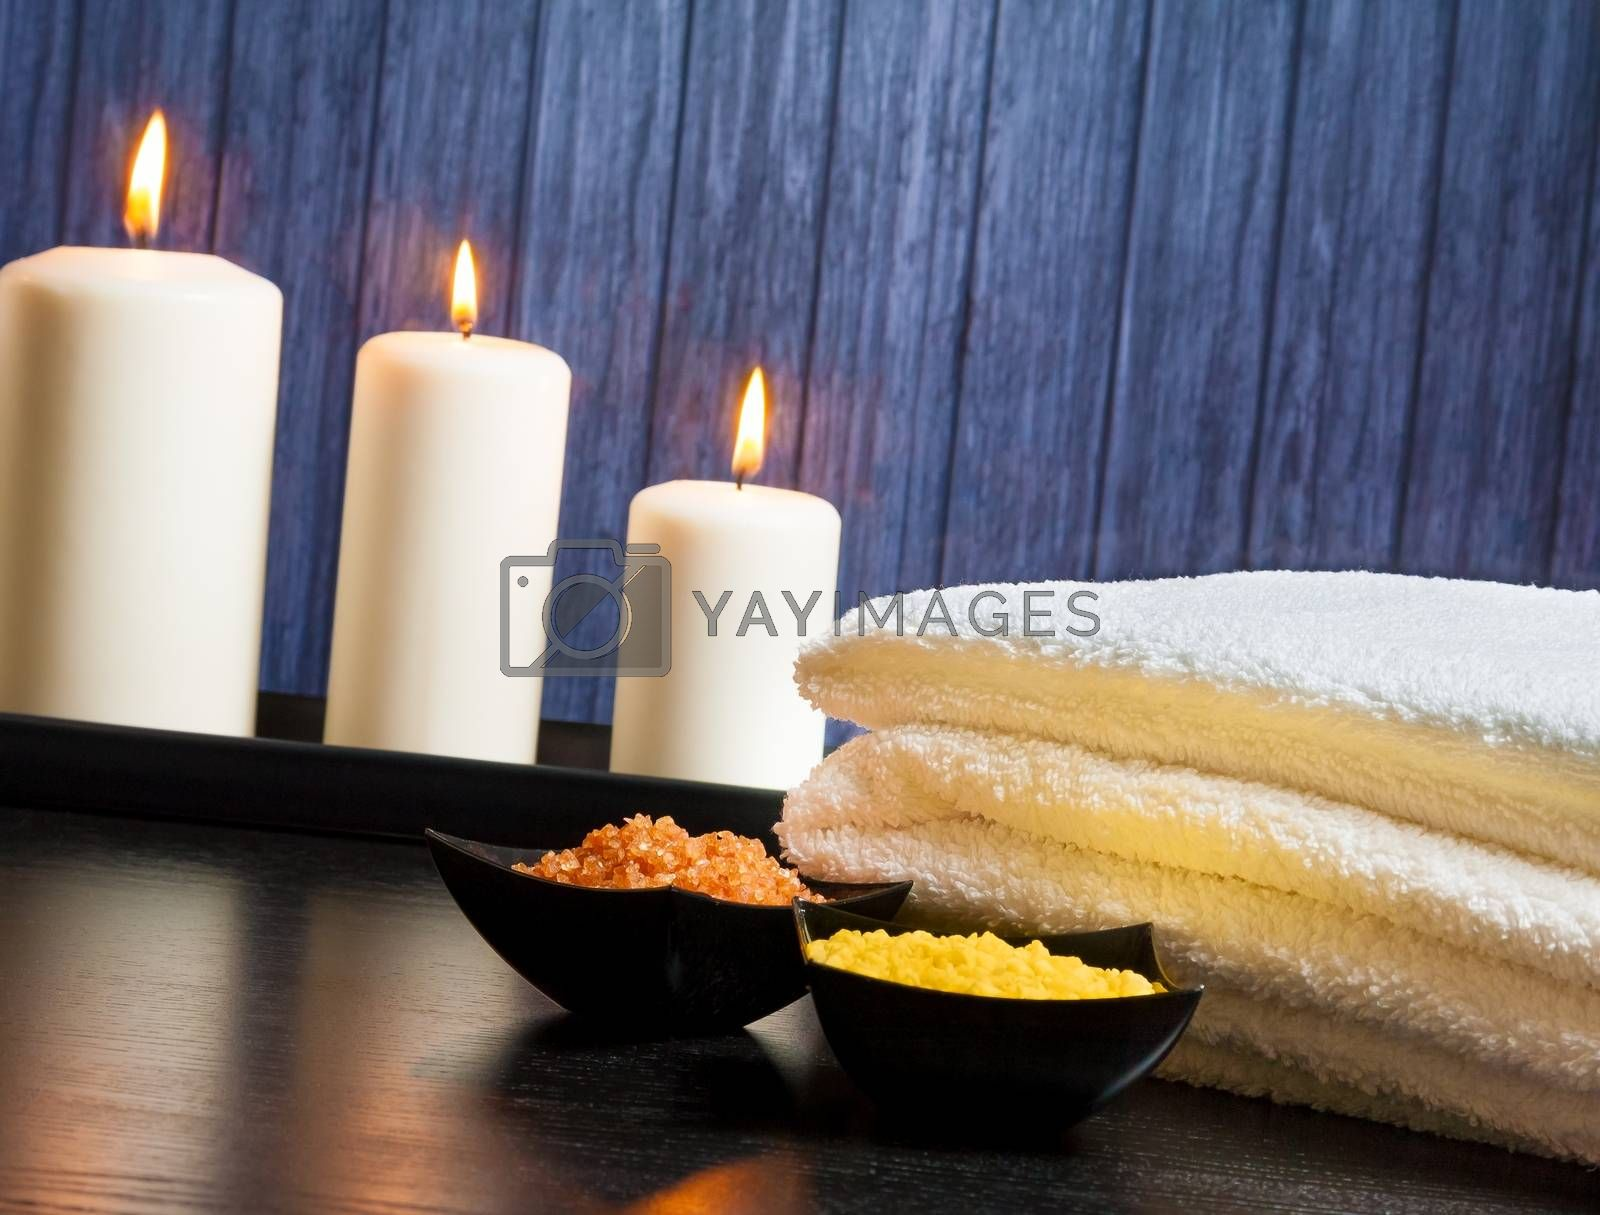 Spa massage border background with towel stacked.candles and sea salt by donfiore